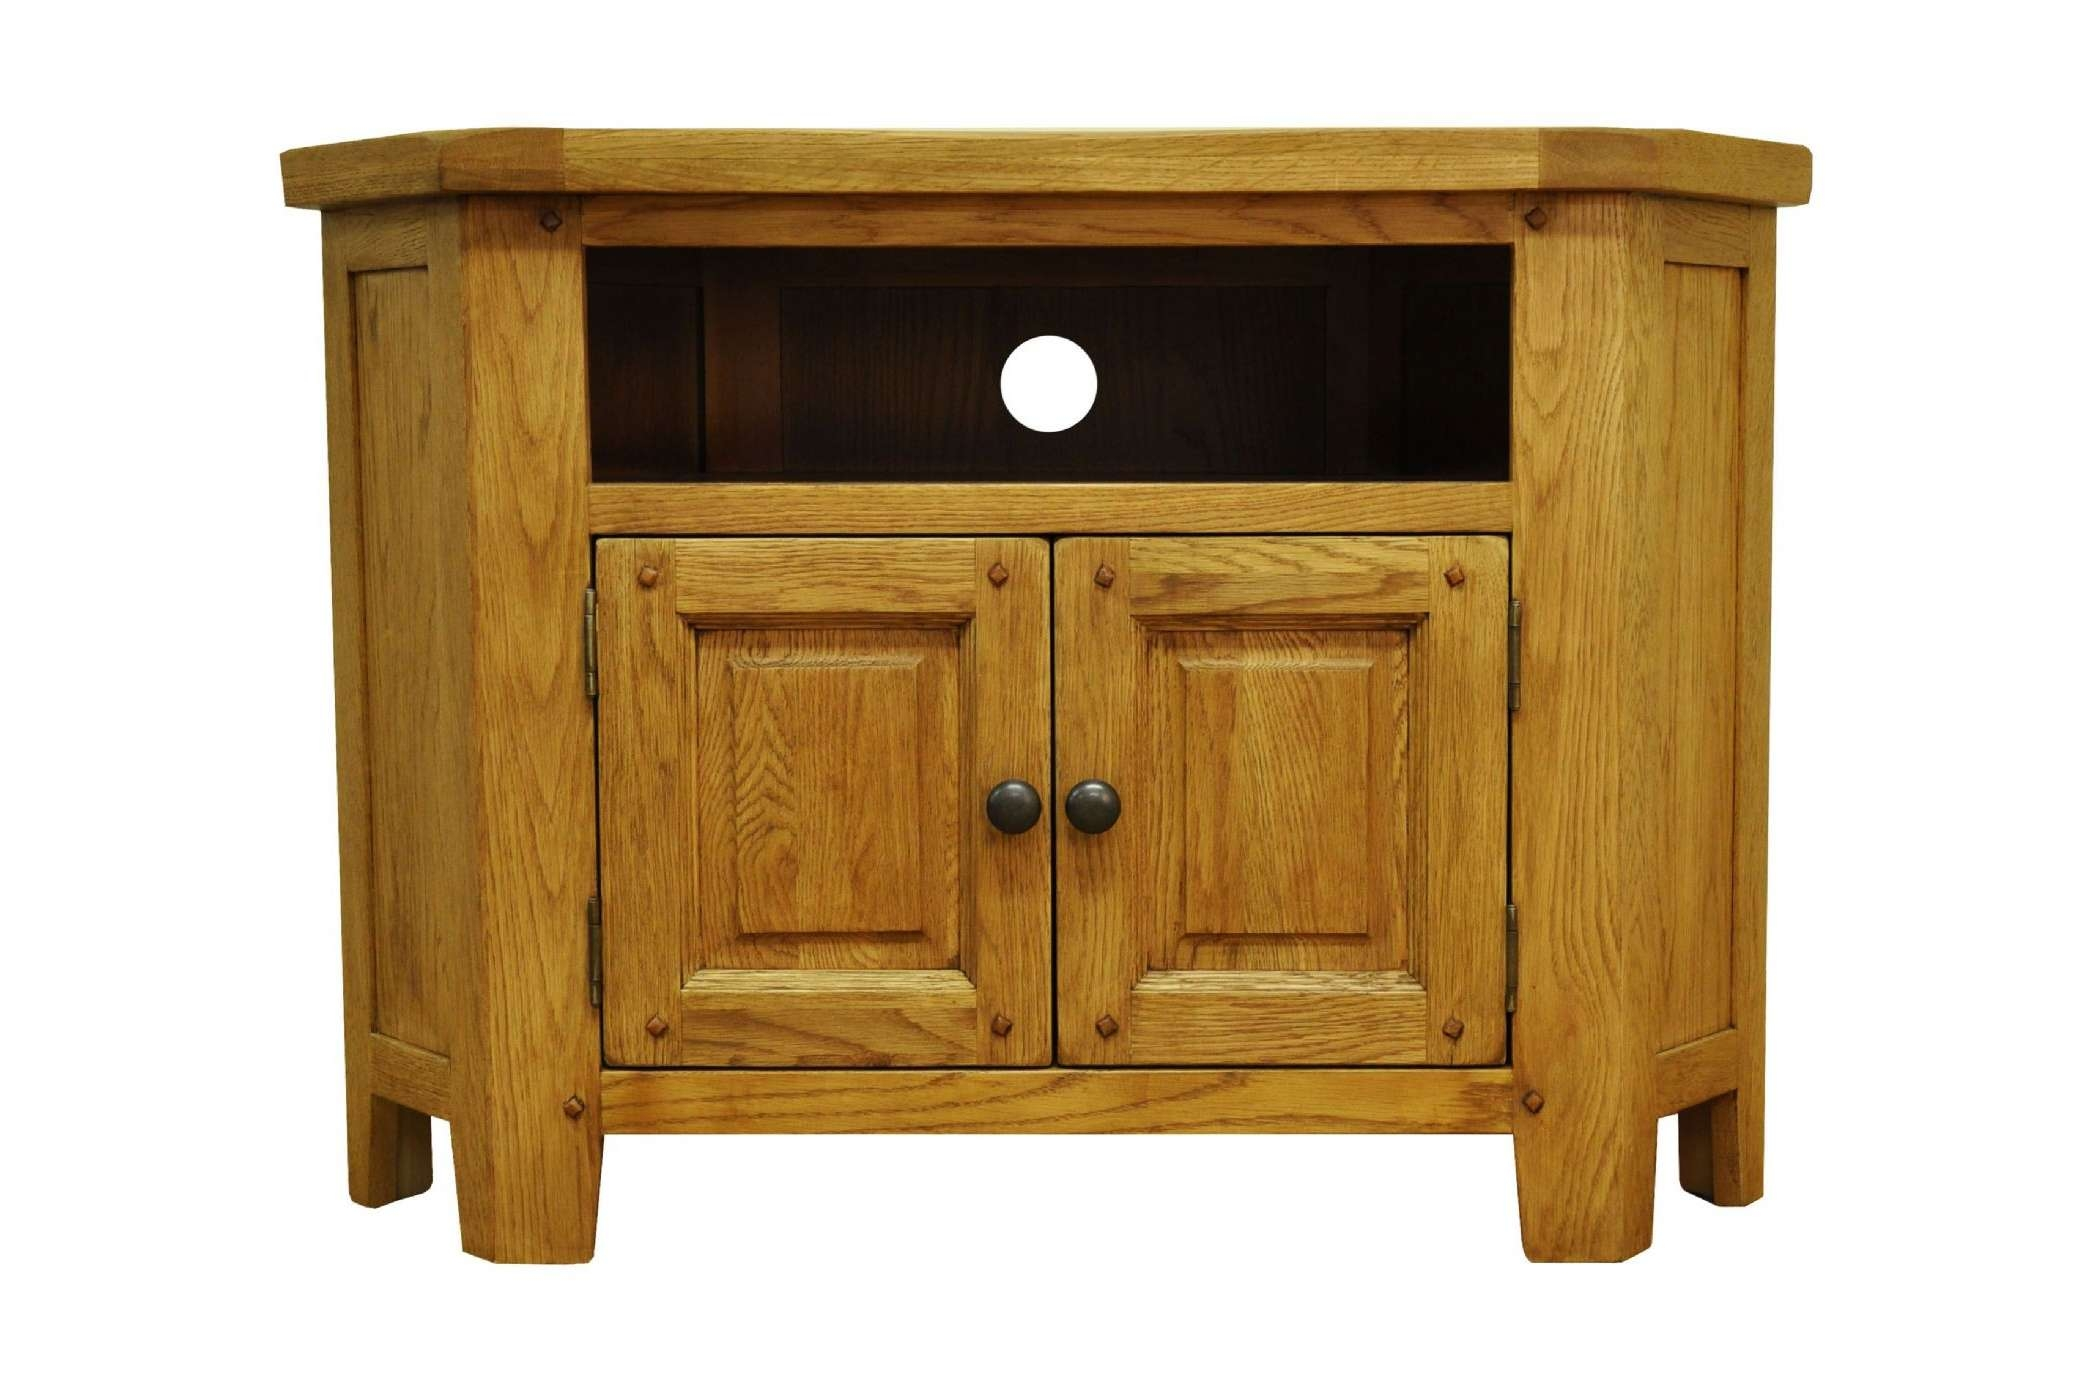 Stratford Rustic Oak Living Corner Tv Unit Cabinet Strat Ctv With Regard To Rustic Corner Tv Stands (View 20 of 20)